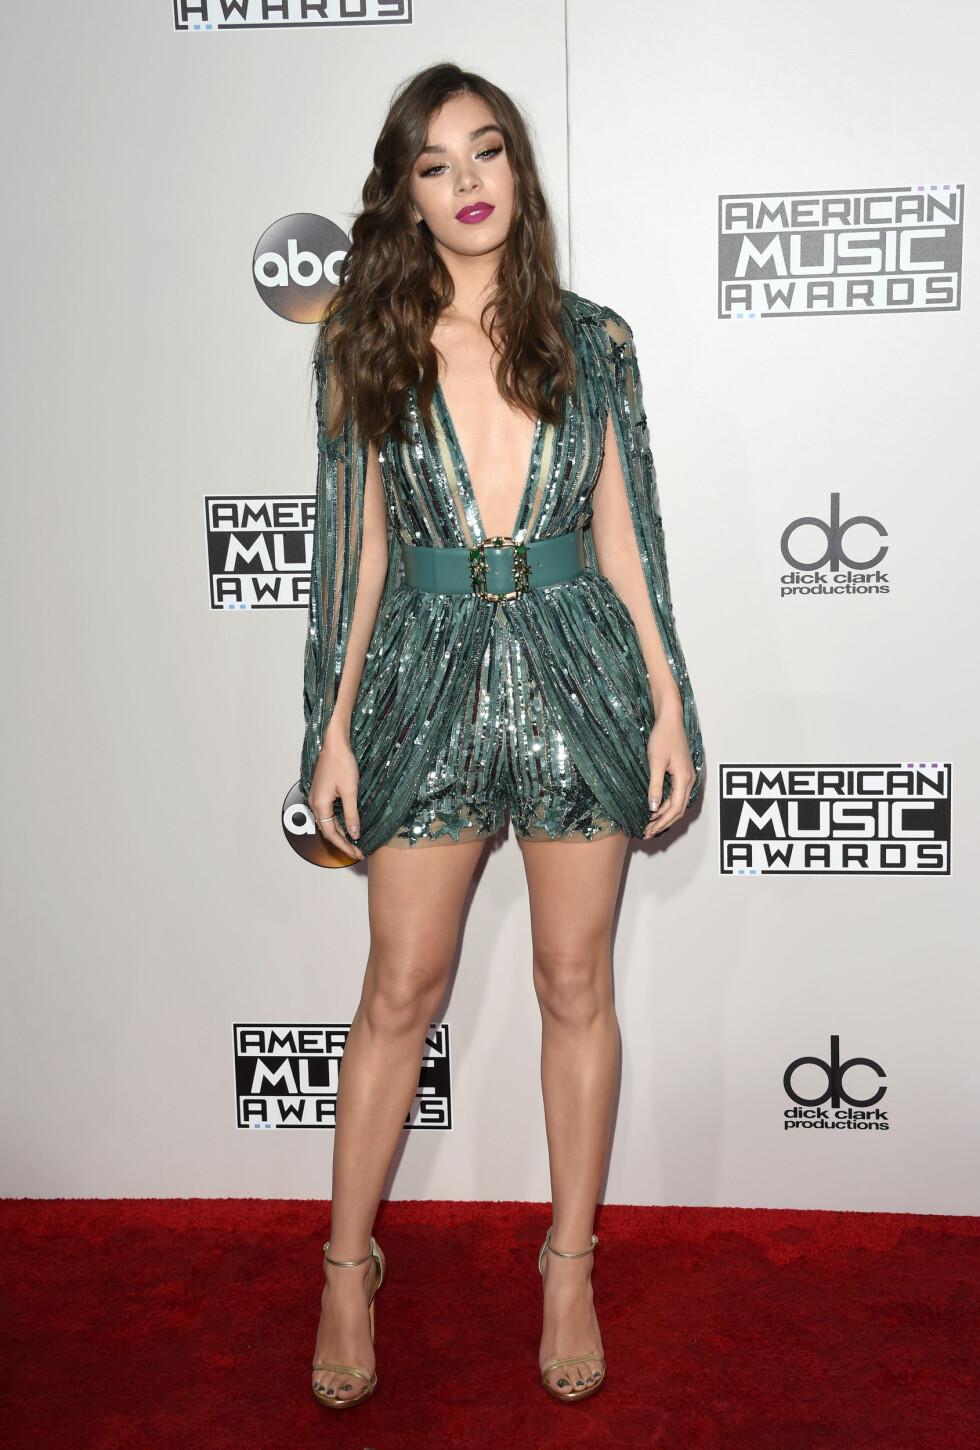 AMERICAN MUSIC AWARDS: Hailee Steinfeld Foto: Pa Photos